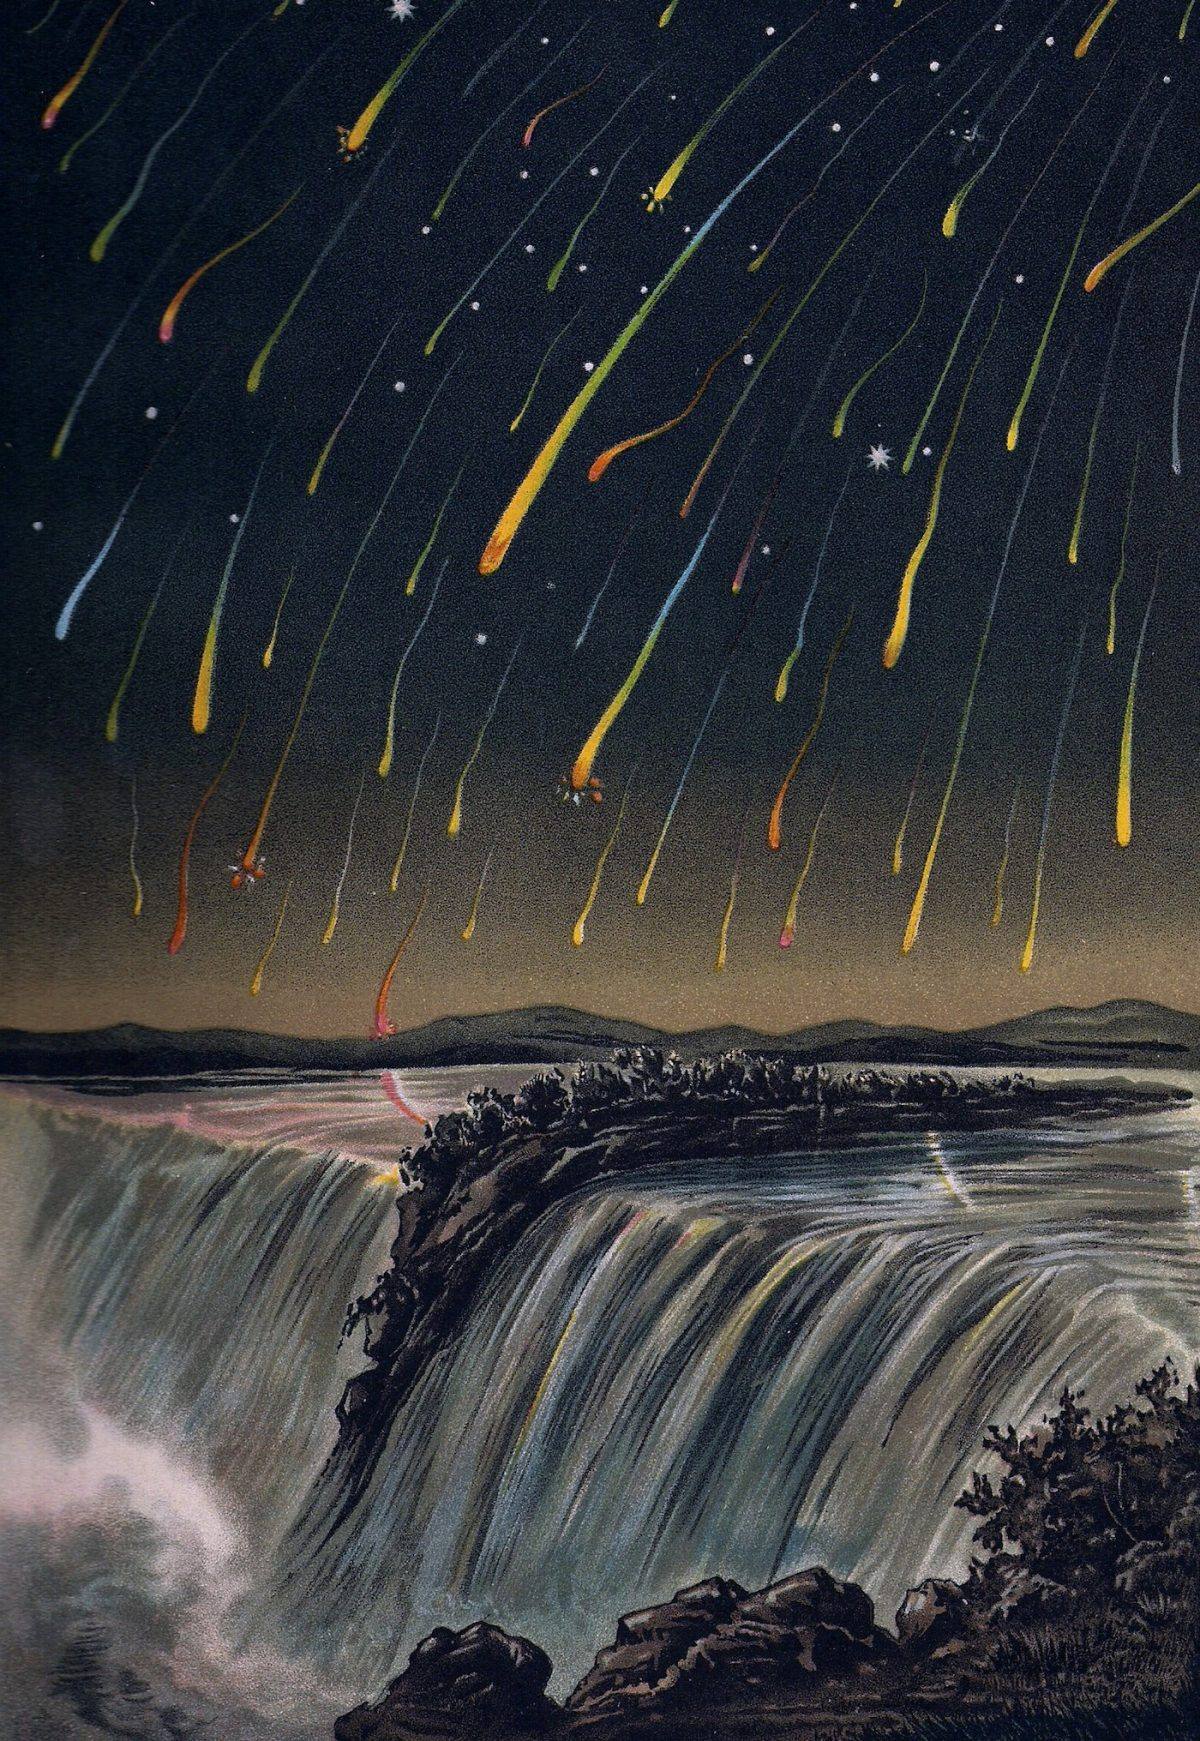 Leonid meteor shower over Niagara Falls. Illustration from Edmund Weiss, Bilder-Atlas der Sternenwelt [Image atlas of the star world], Stuttgart, 1892 (The Smithsonian Library, Washington DC)